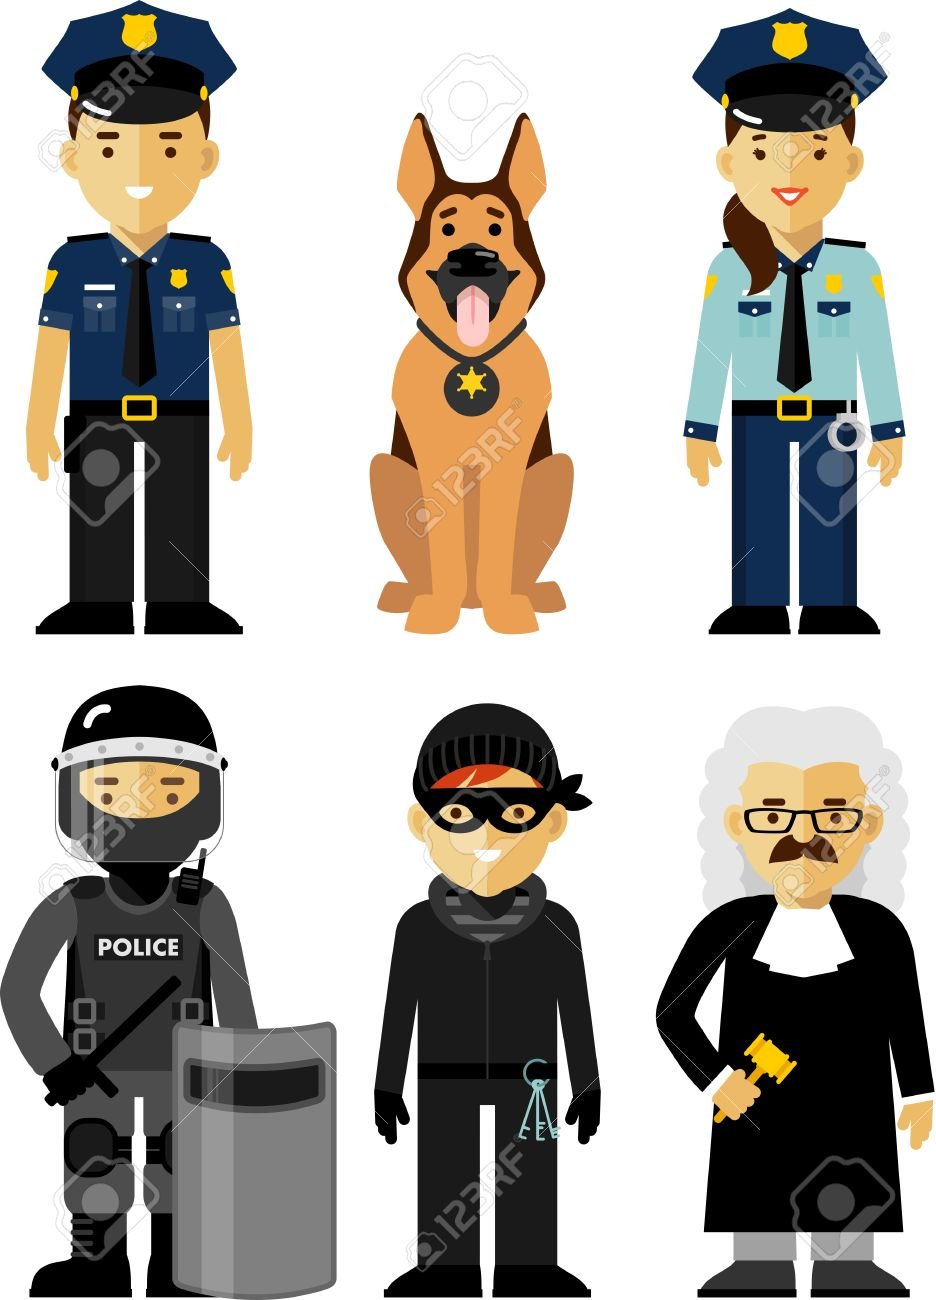 74,678 police officer stock illustrations, cliparts and royalty free